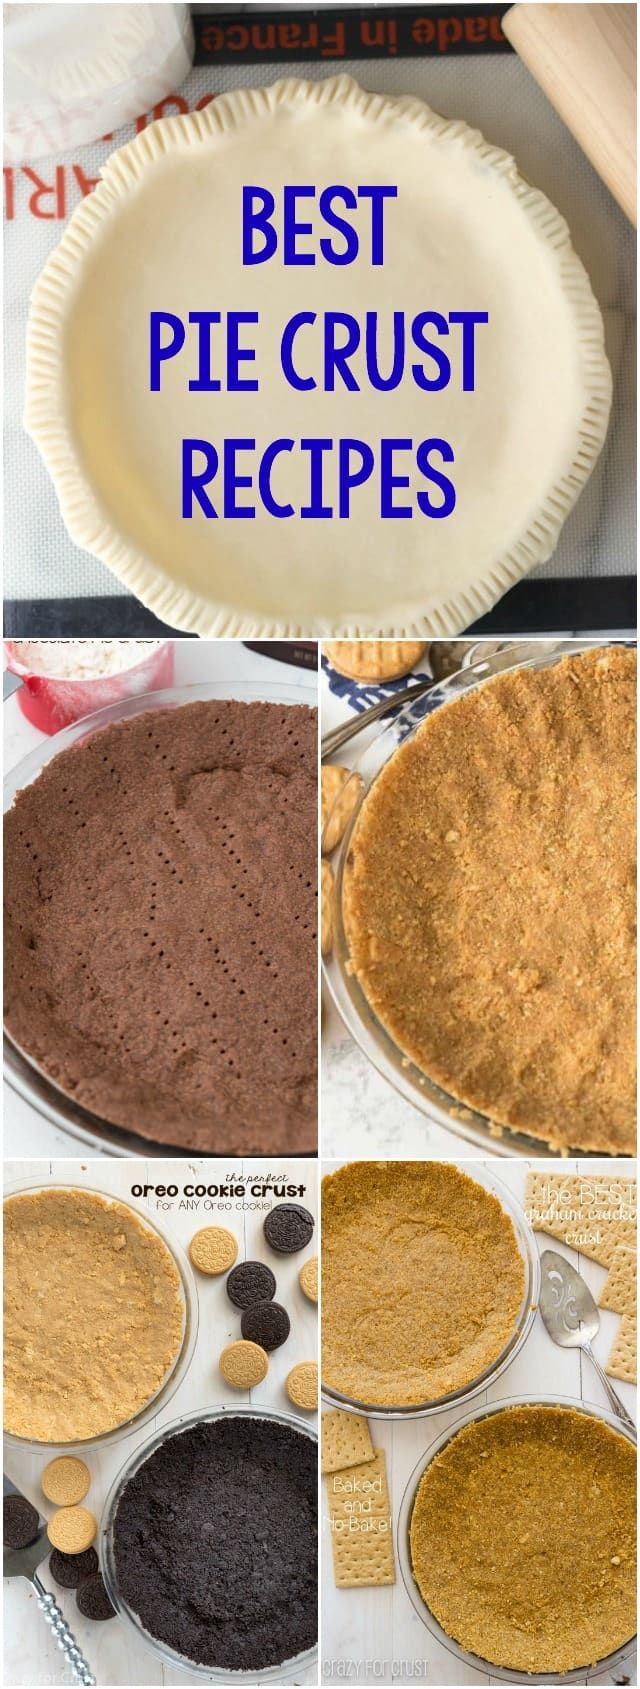 Pie Crust Recipes | Pie crust recipes, Cookie crust and Crusts